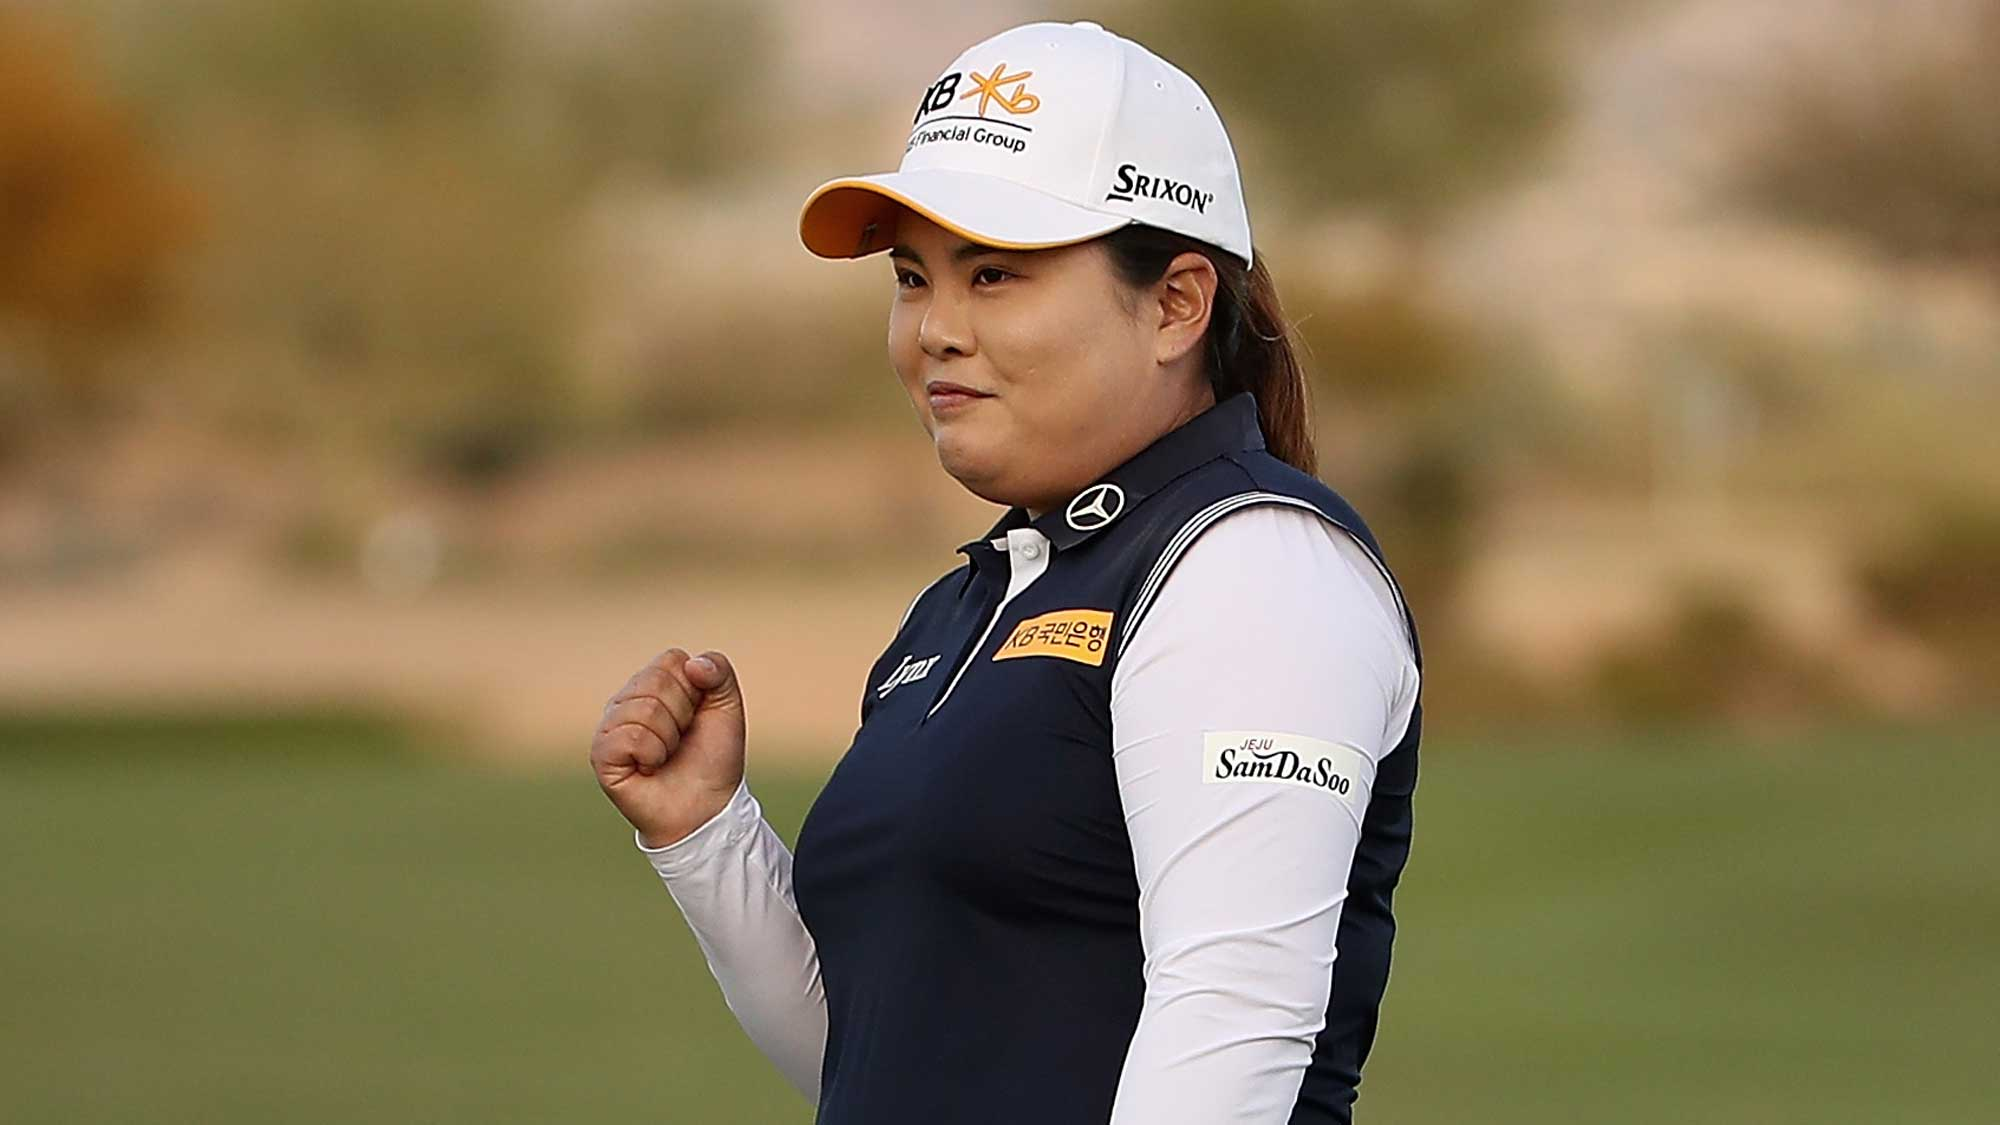 Inbee Park Fist Pump After Sealing Founders Cup Title